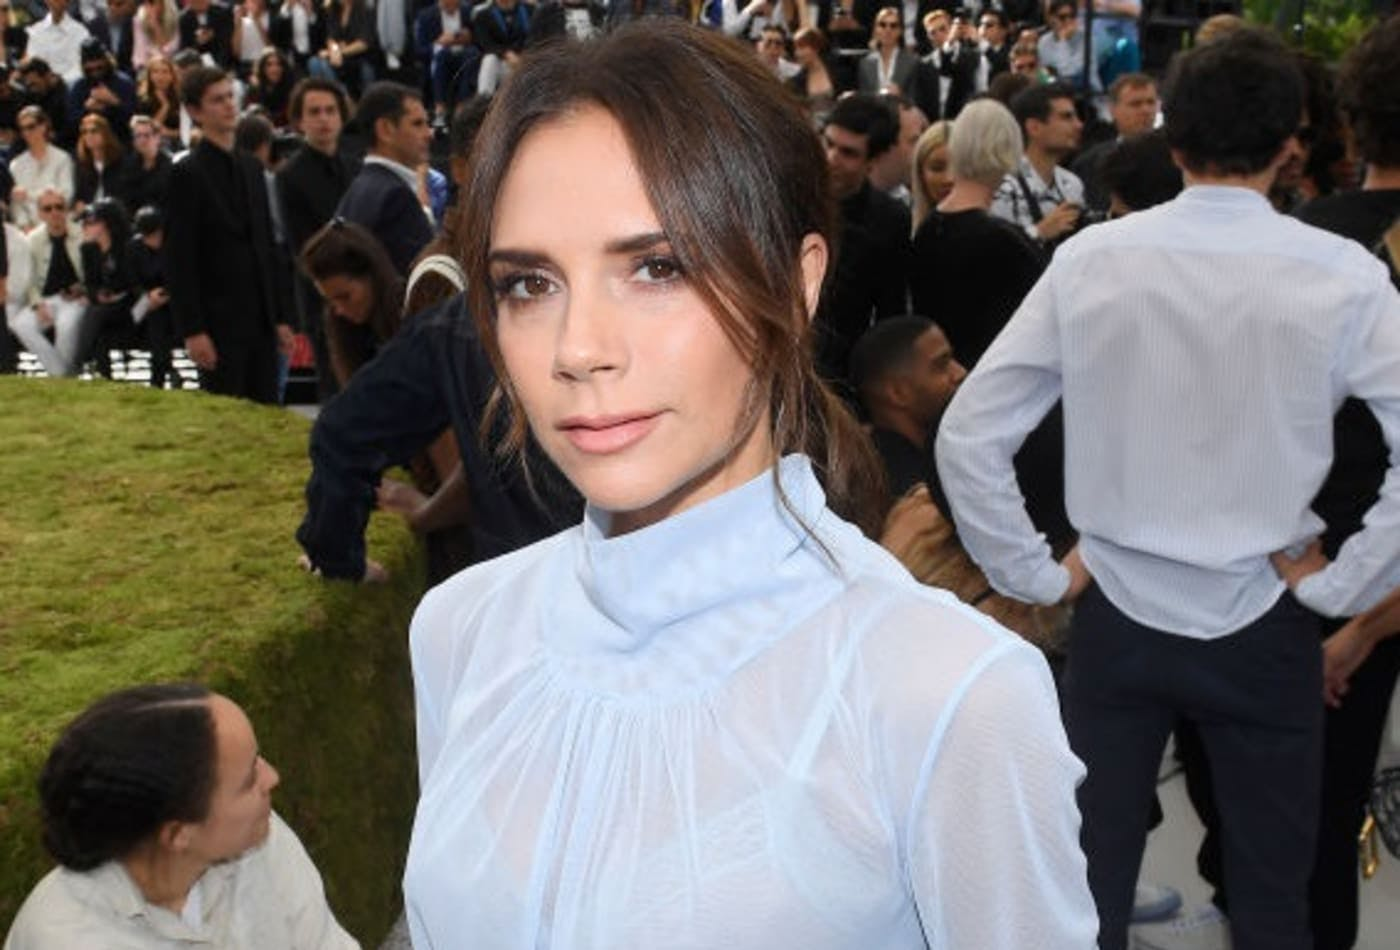 VICTORIA BECKHAM IS UPSET OVER CRITICISM FOR FURLOUGHING HER STAFF